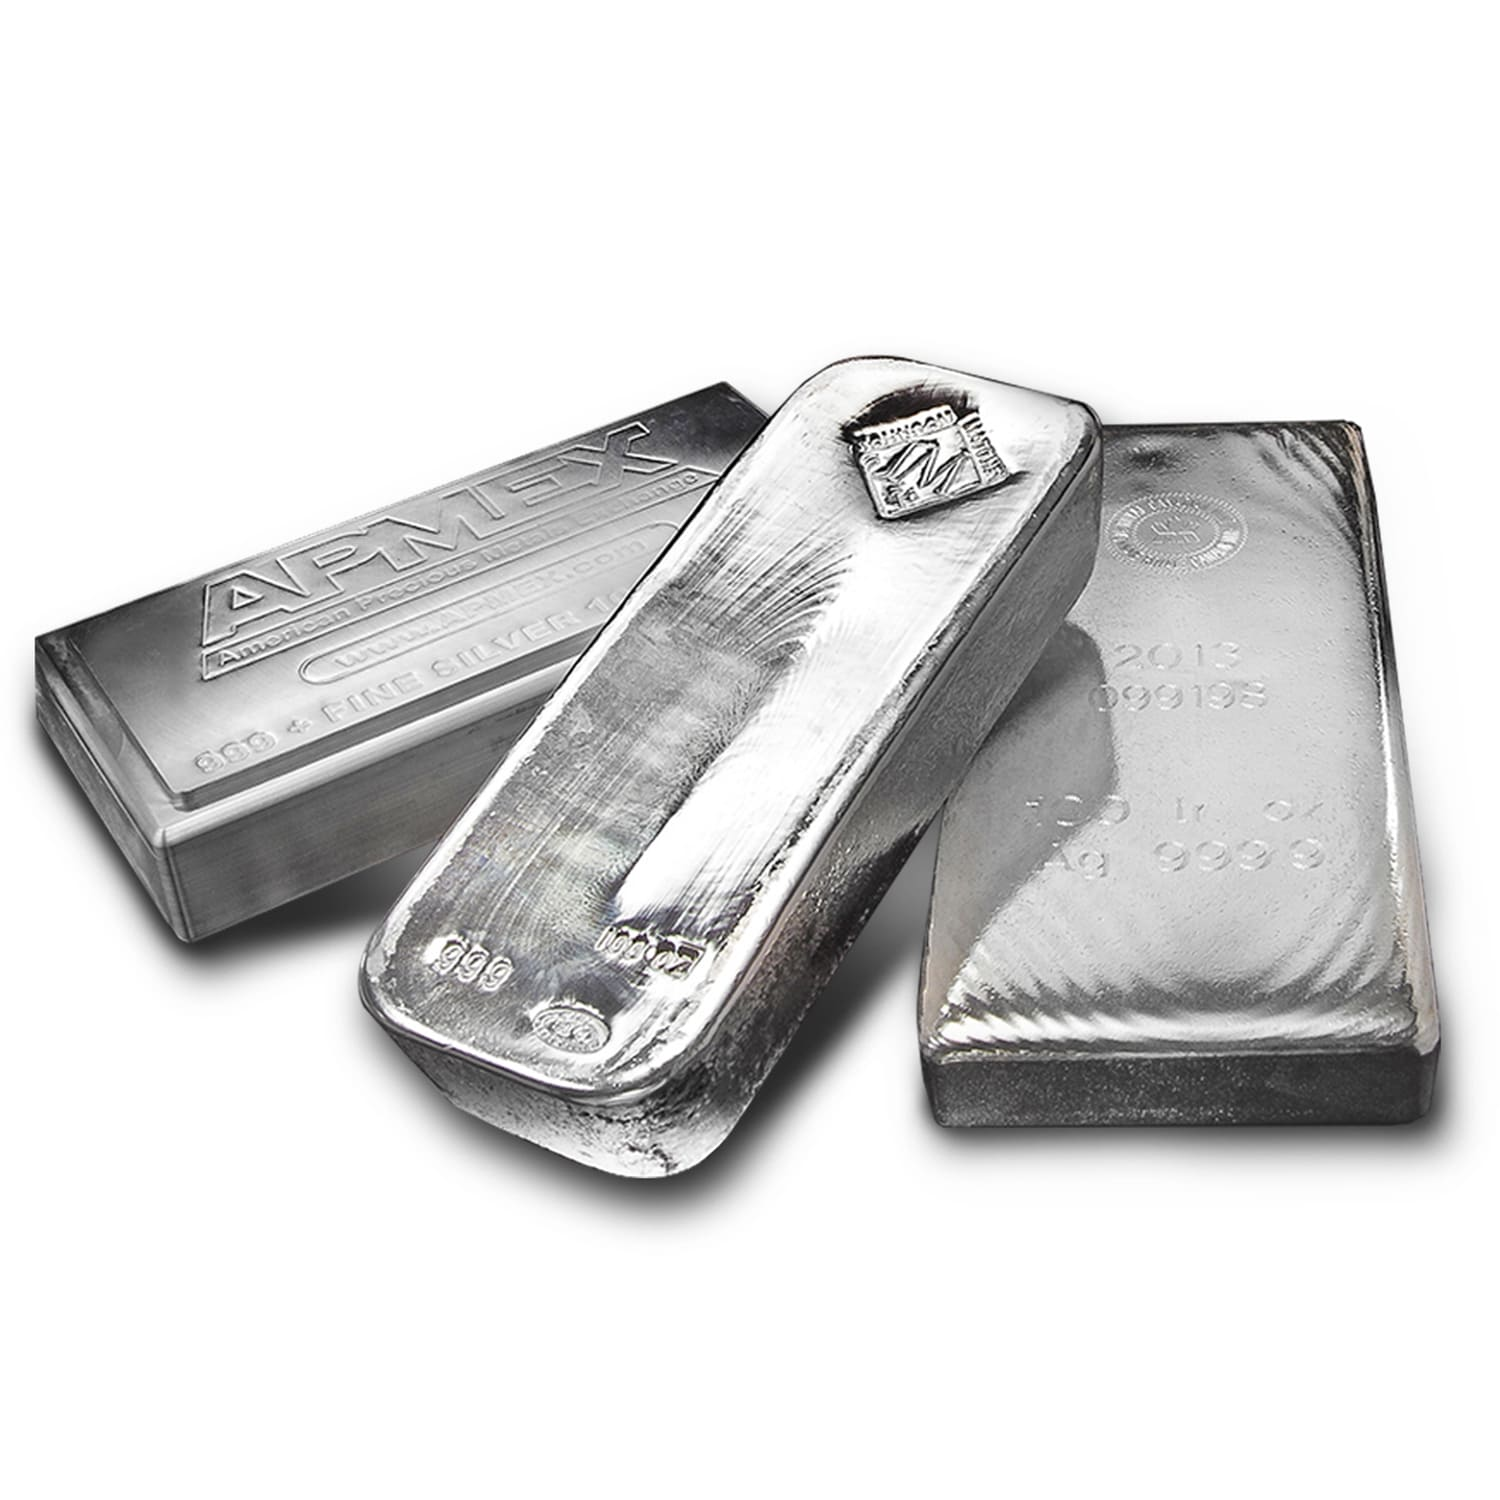 103.35 oz Silver Bar - Secondary Market